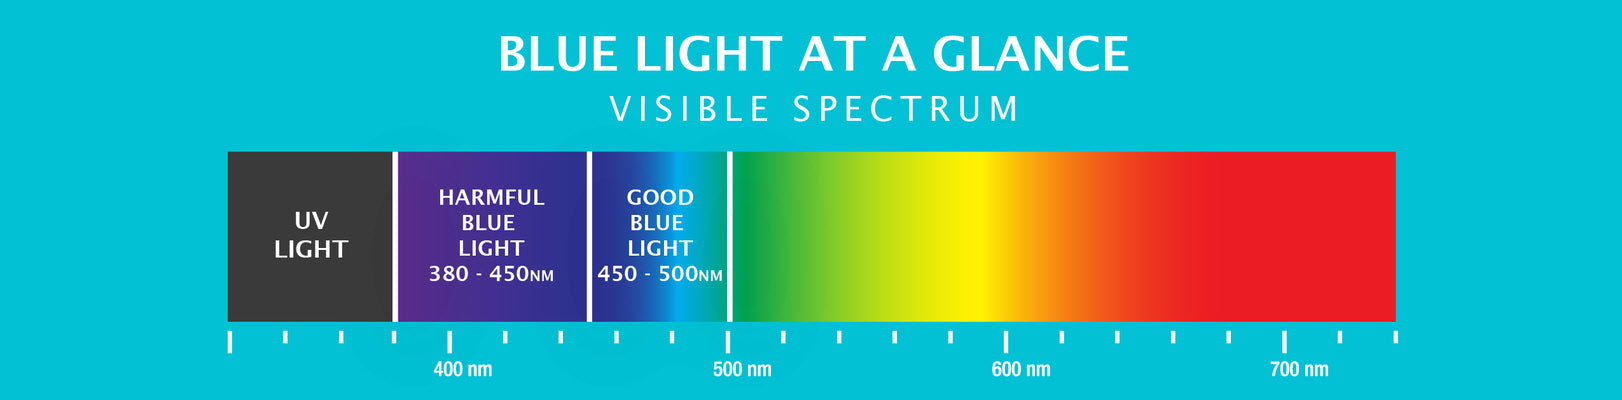 light spectrum analysis showing wavelengths of harmful and beneficial blue light